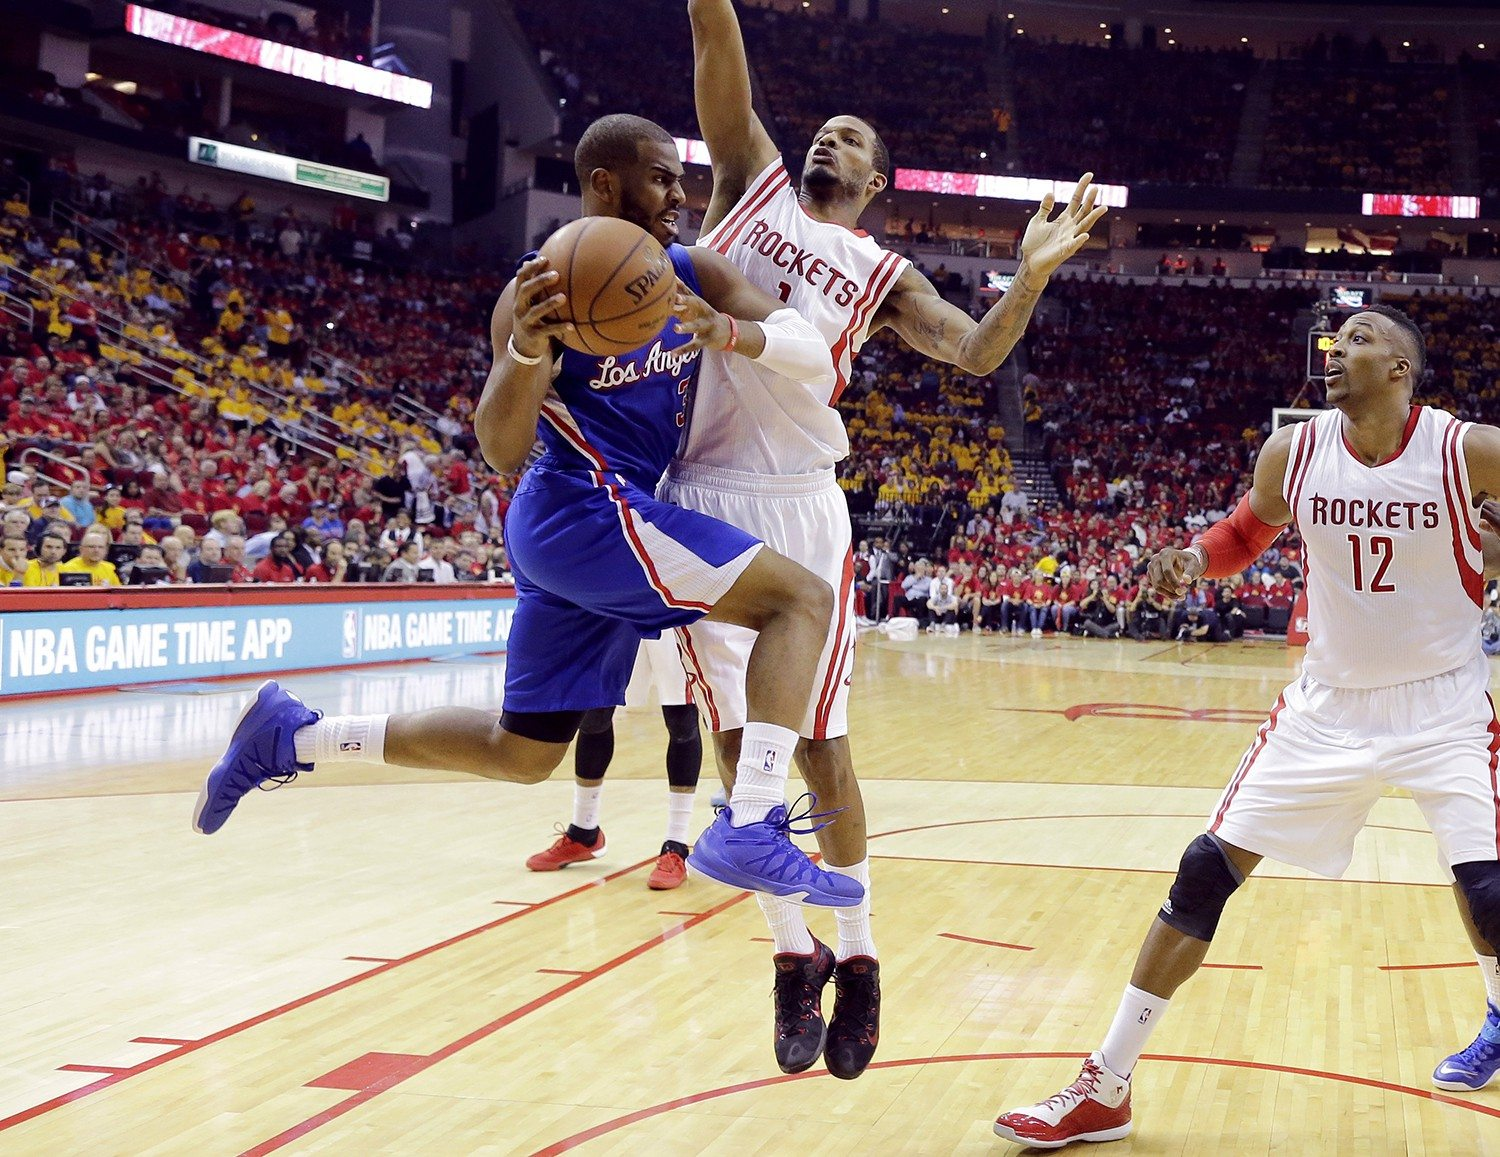 David J. Phillip/APLos Angeles Clippers' Chris Paul (3) drives around Houston Rockets' Trevor Ariza (1) and Dwight Howard (12) during the Game 5 of the NBA Western Conference semifinals Tuesday.